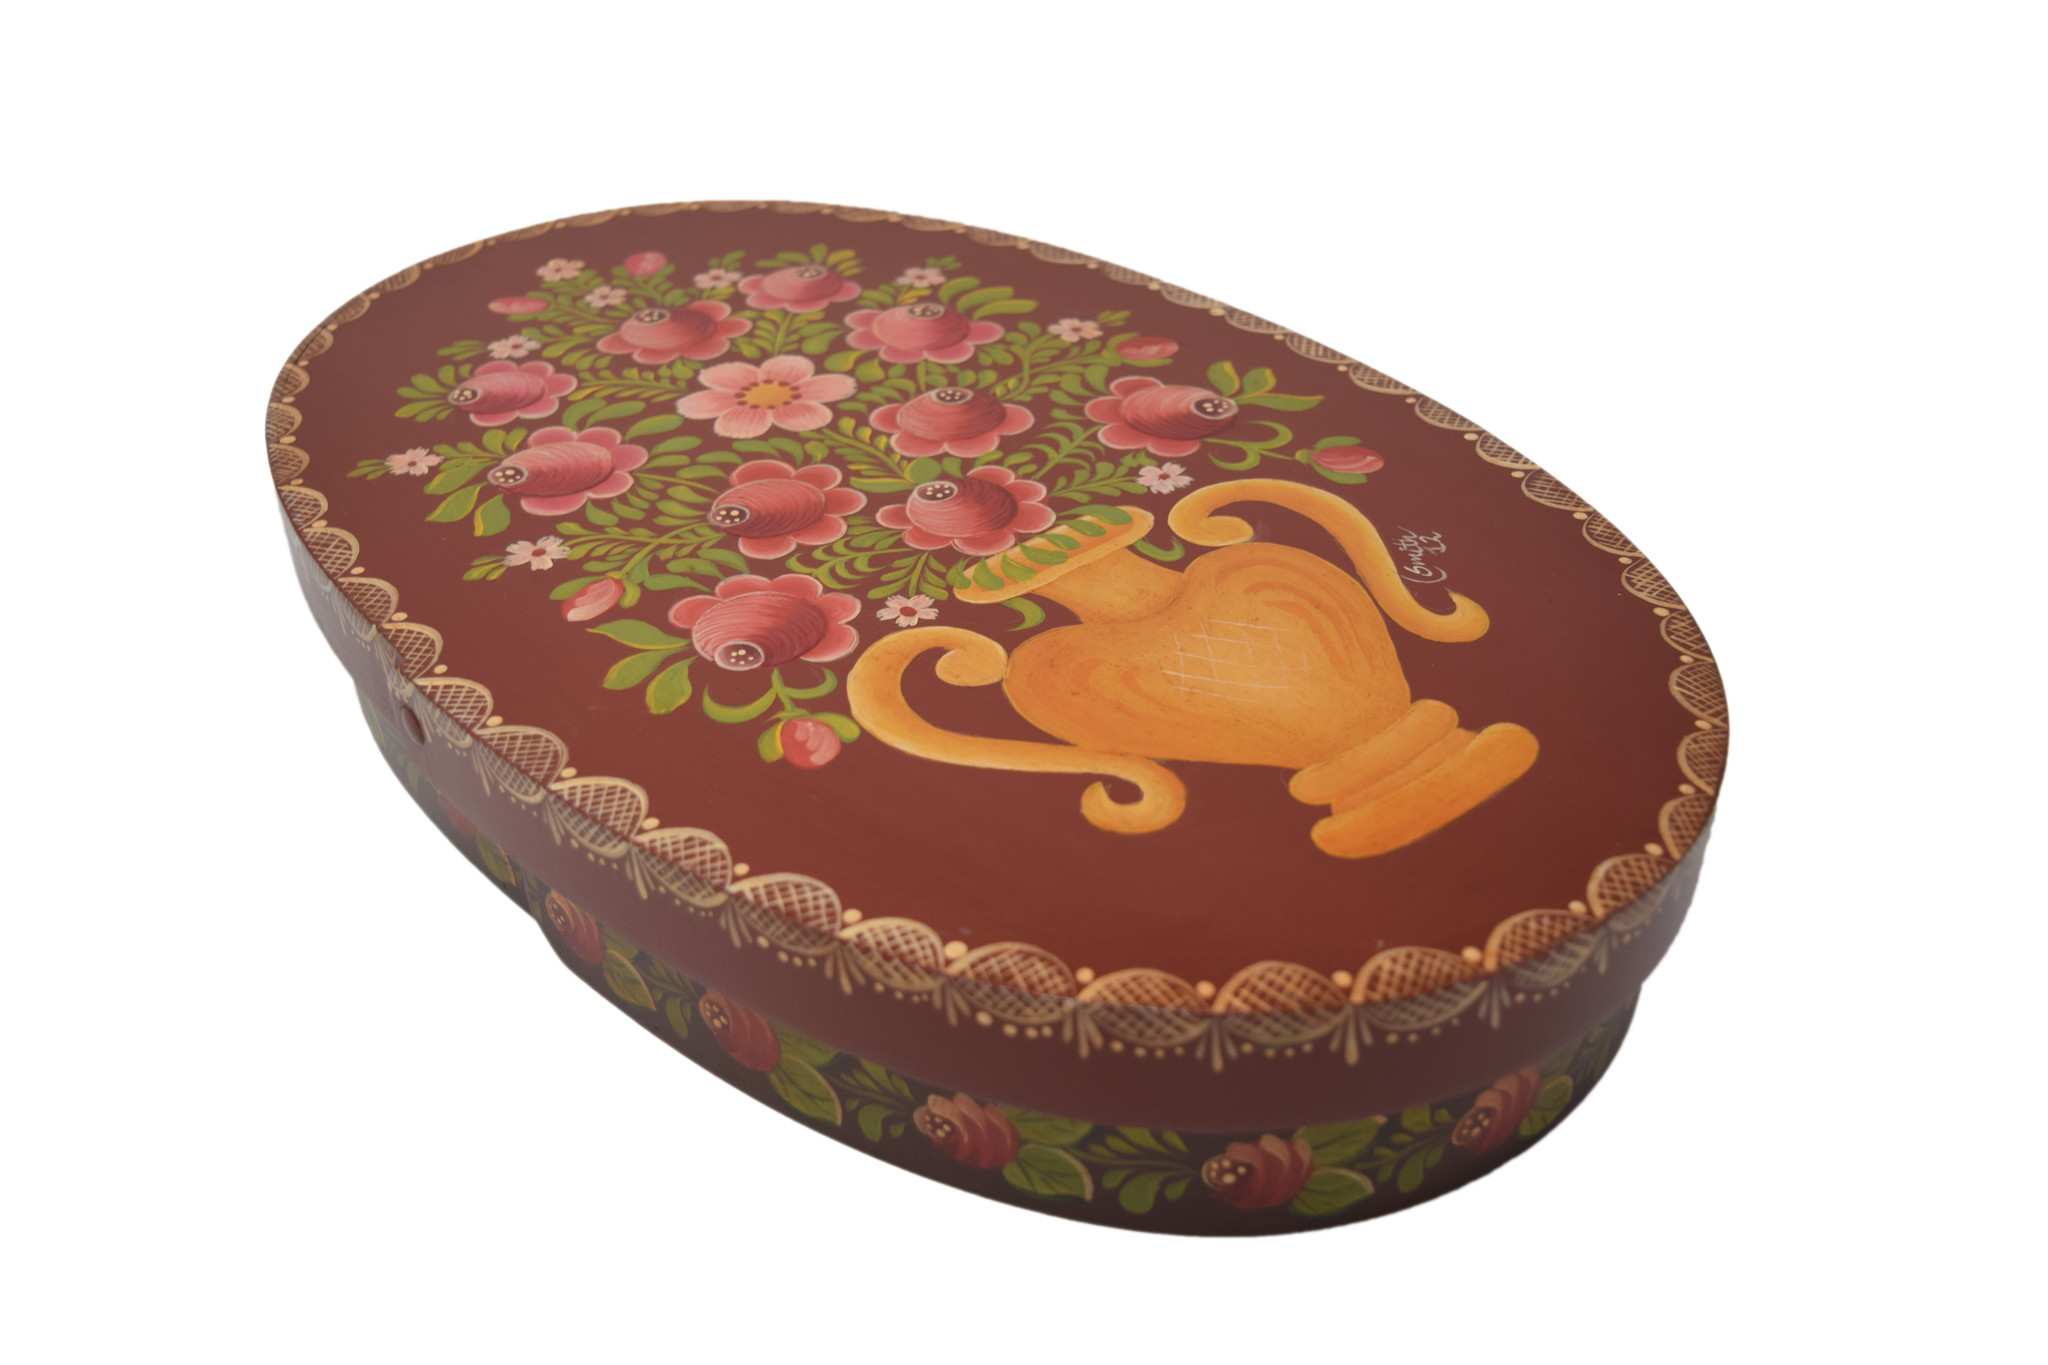 Oval Reddish Brown Box with Vase & Flowers-1